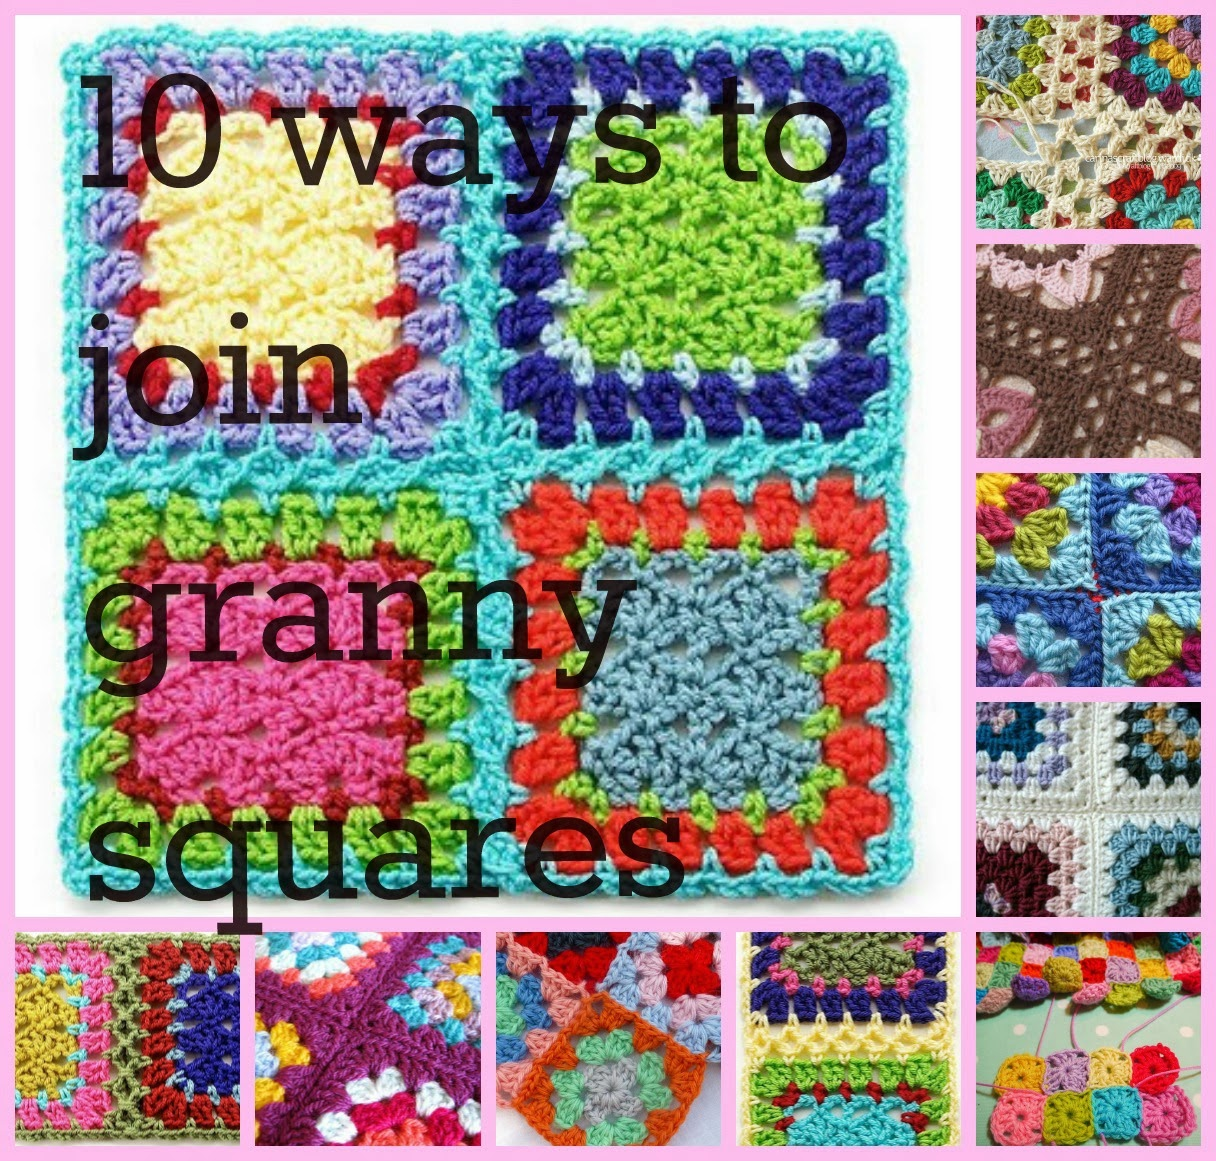 http://www.knotyournanascrochet.com/2013/04/10-different-ways-to-join-granny-squares.html